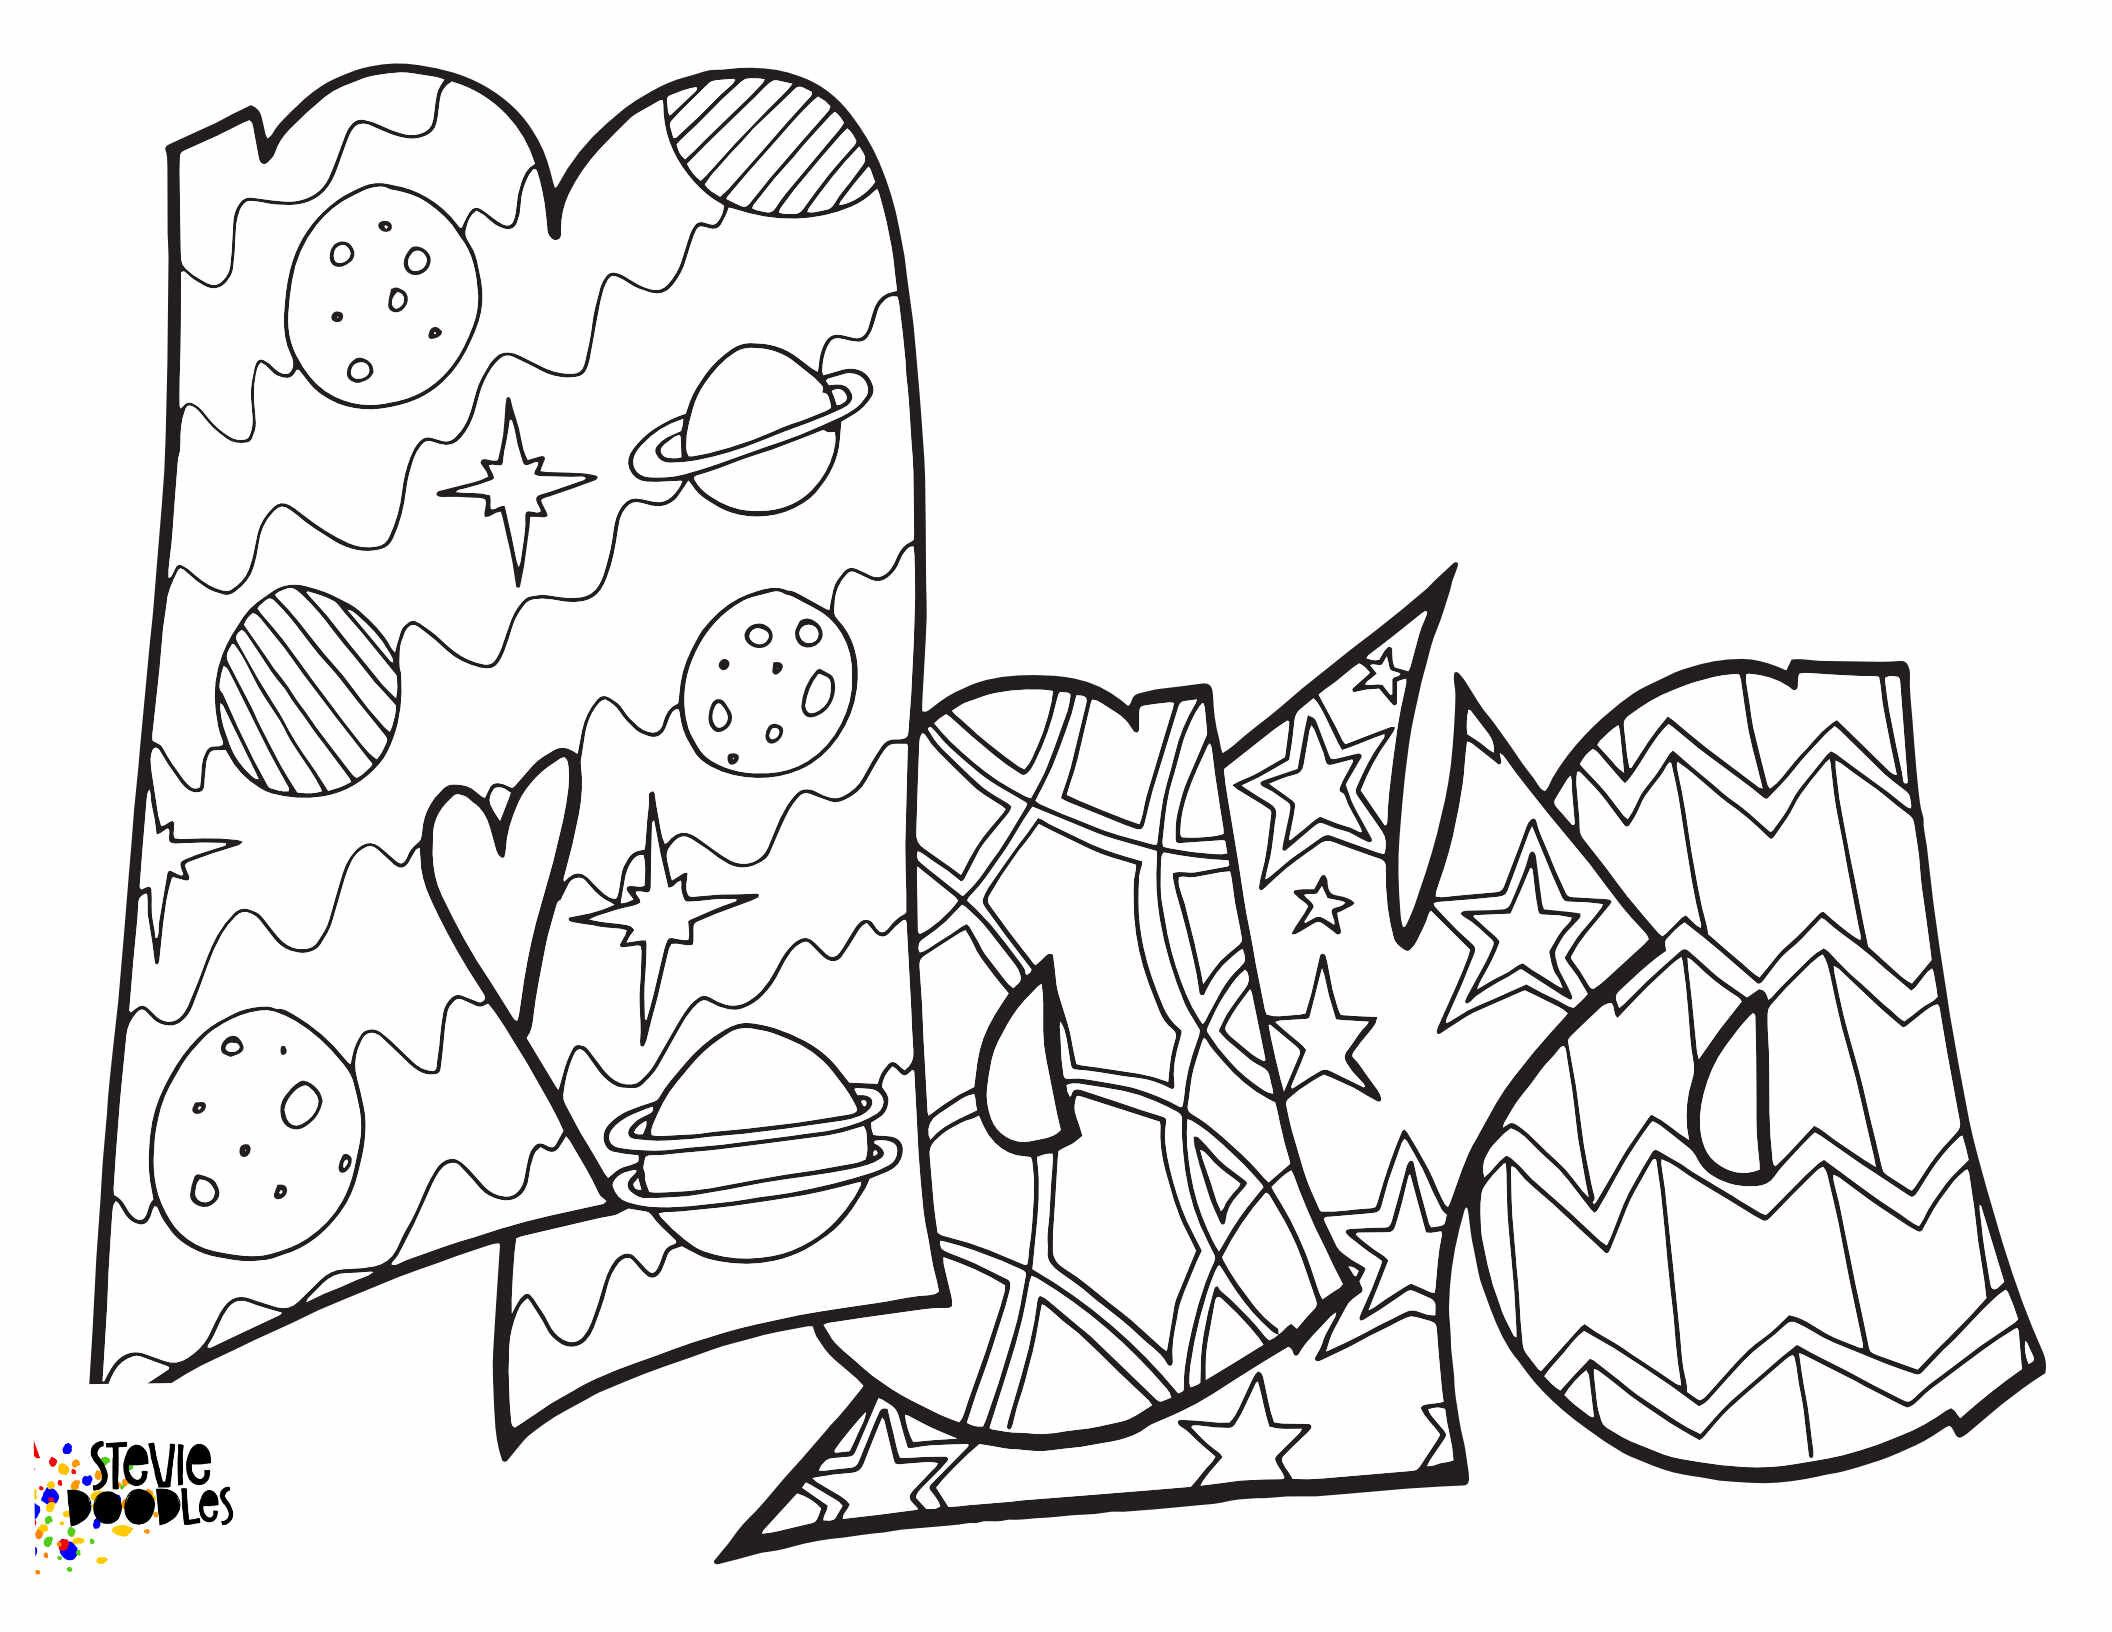 Free Coloring Pages Stevie Doodles Coloring Pages Name Coloring Pages Free Coloring Pages